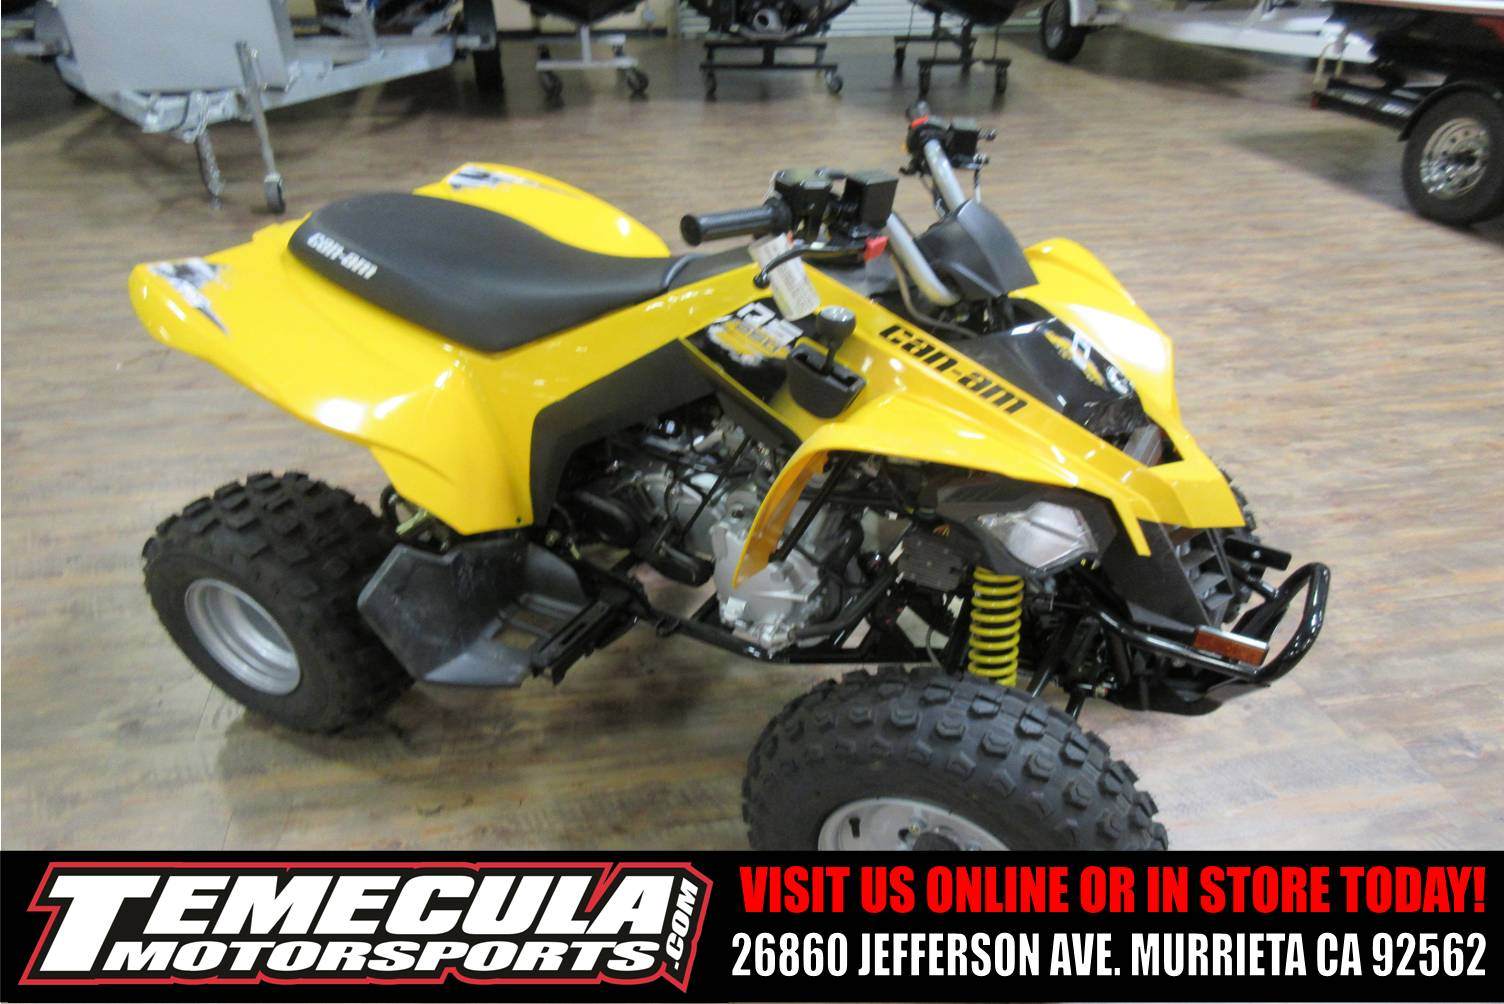 New 2018 Can-Am DS 250 ATVs in Murrieta, CA | Stock Number: C024056